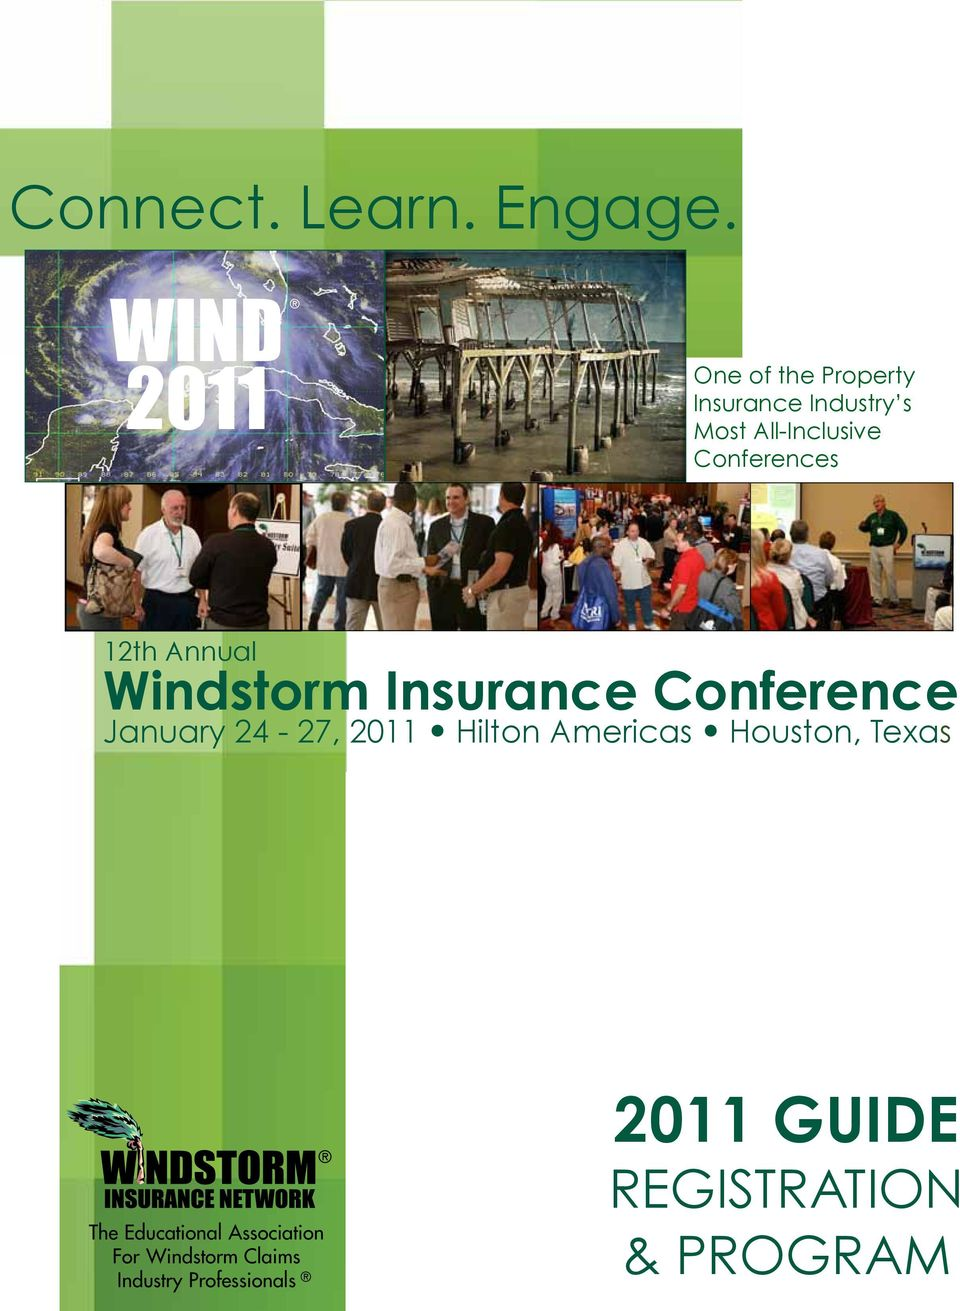 Conferences 12th Annual Windstorm Insurance Conference January 24-27, 2011